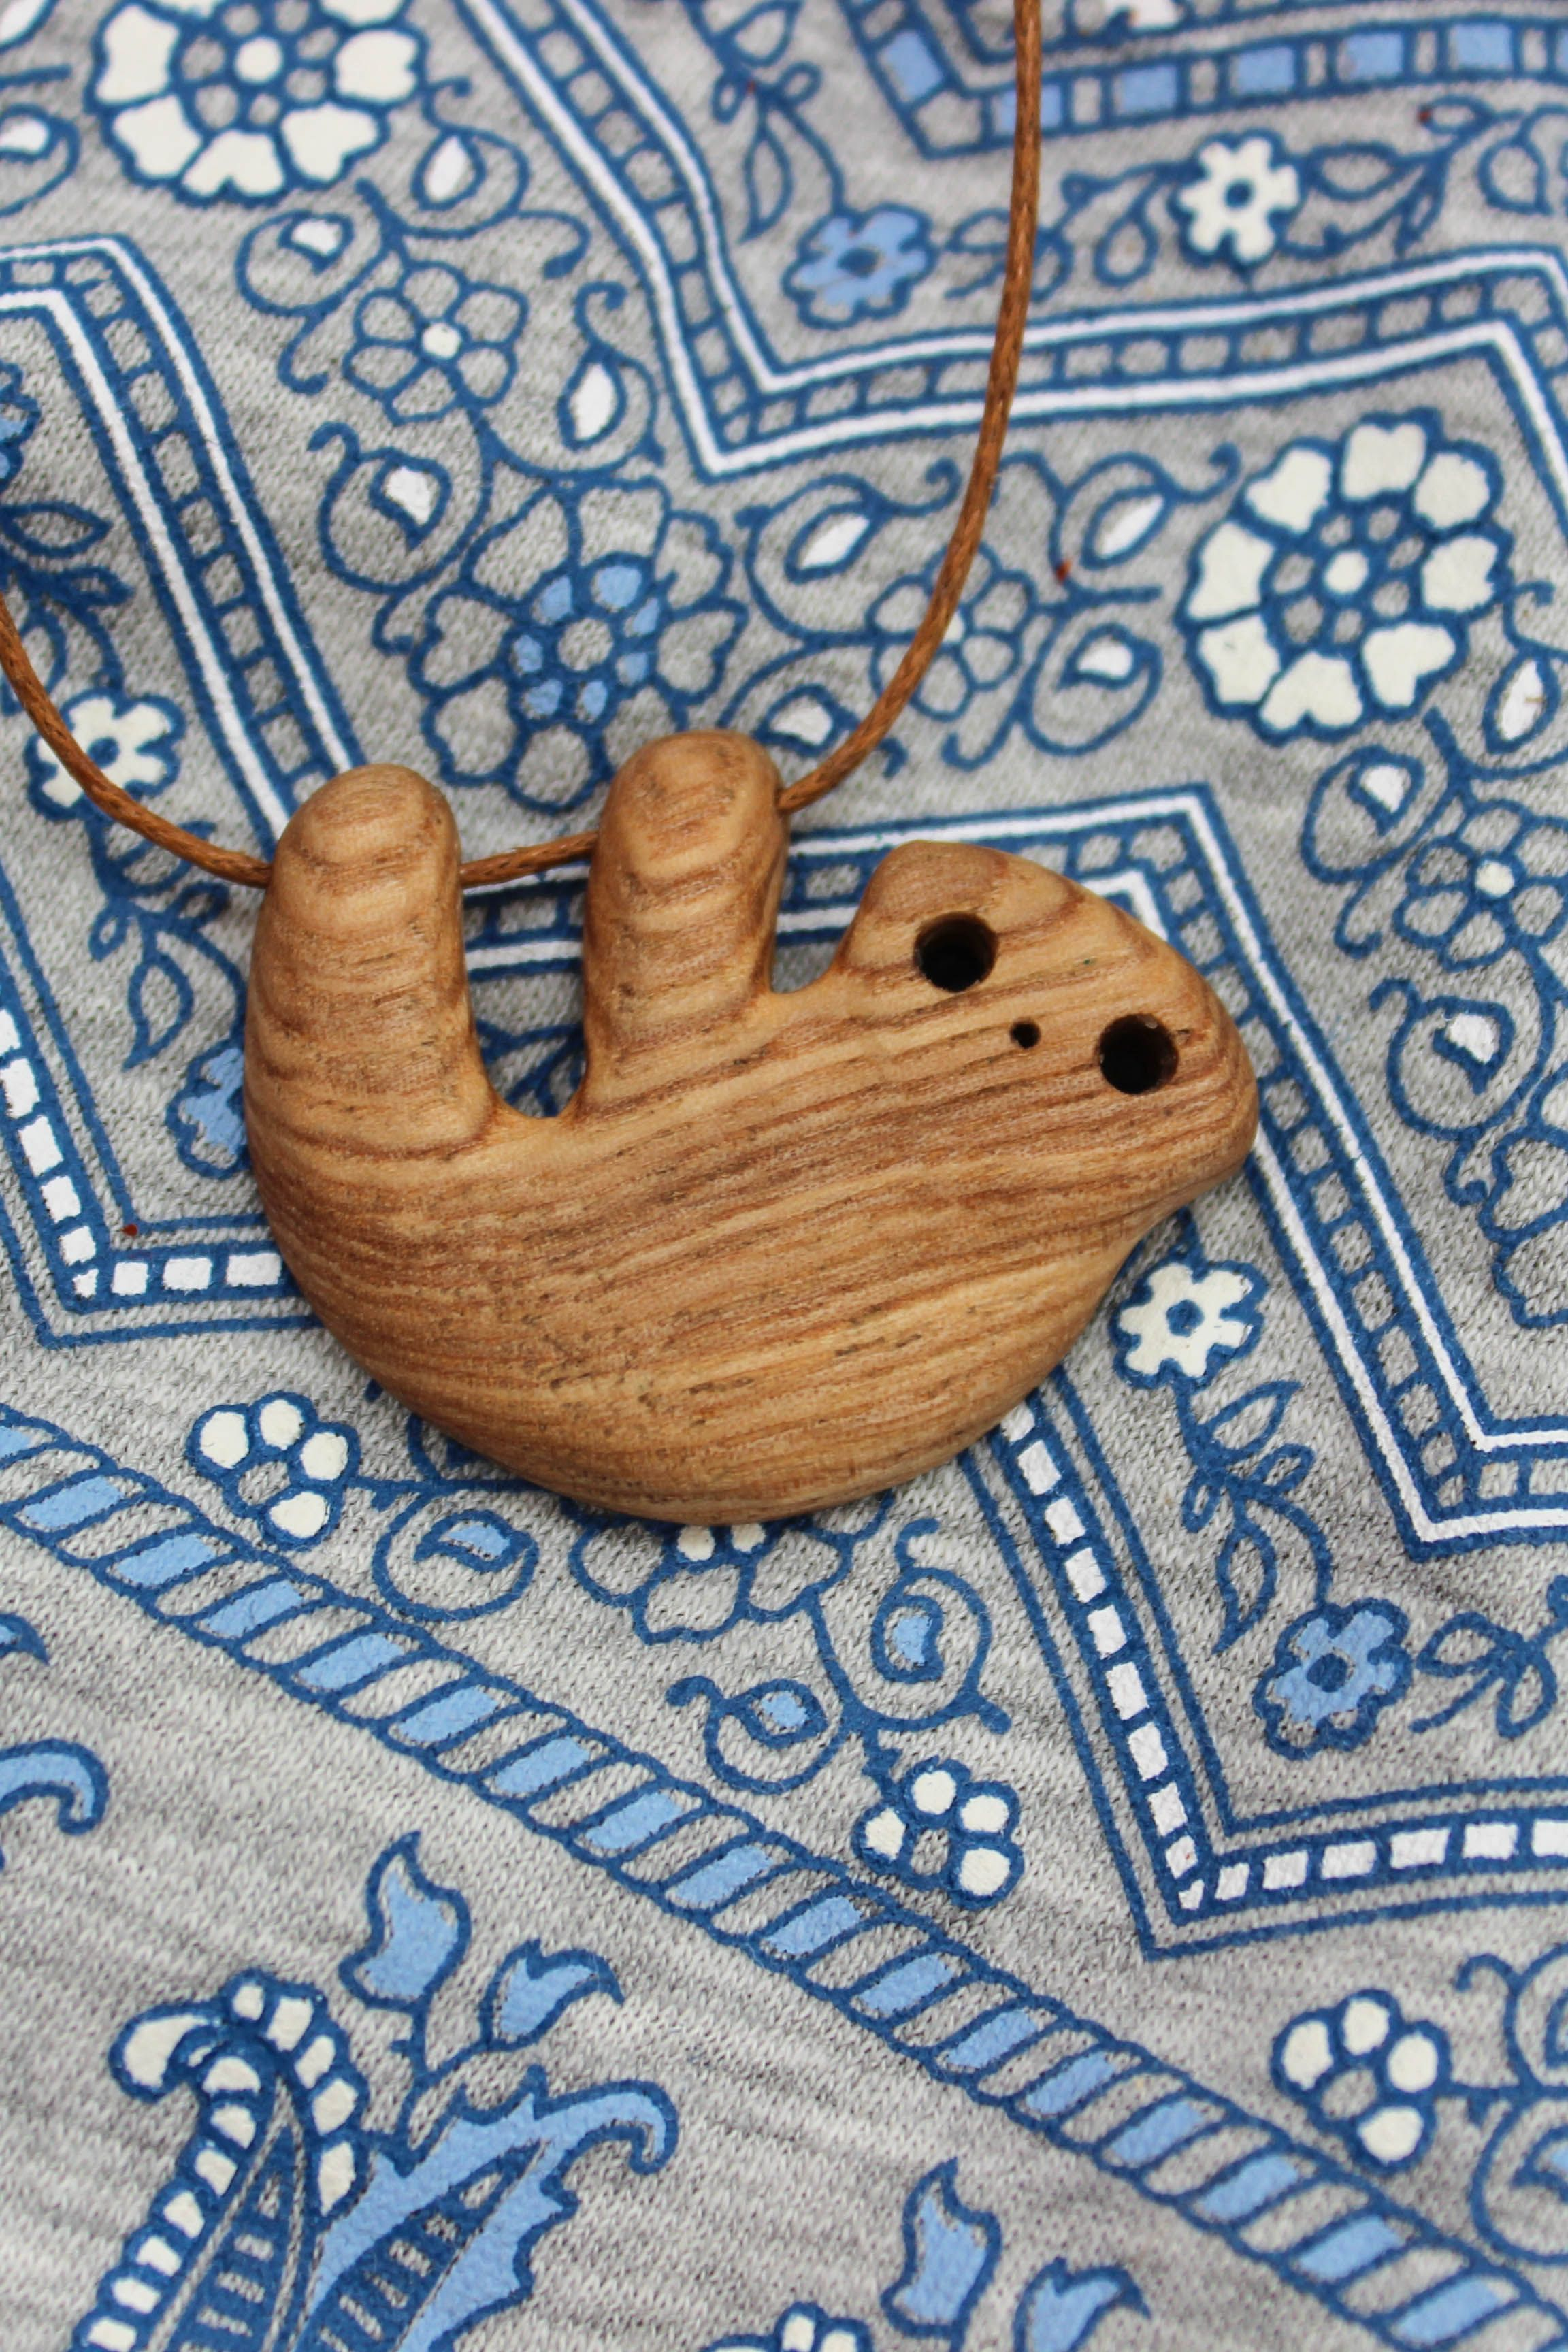 Wooden Sloth Necklace, Hanging Sloth Pendant, Baby Sloth Miniature, Carved Date Gift #babysloth